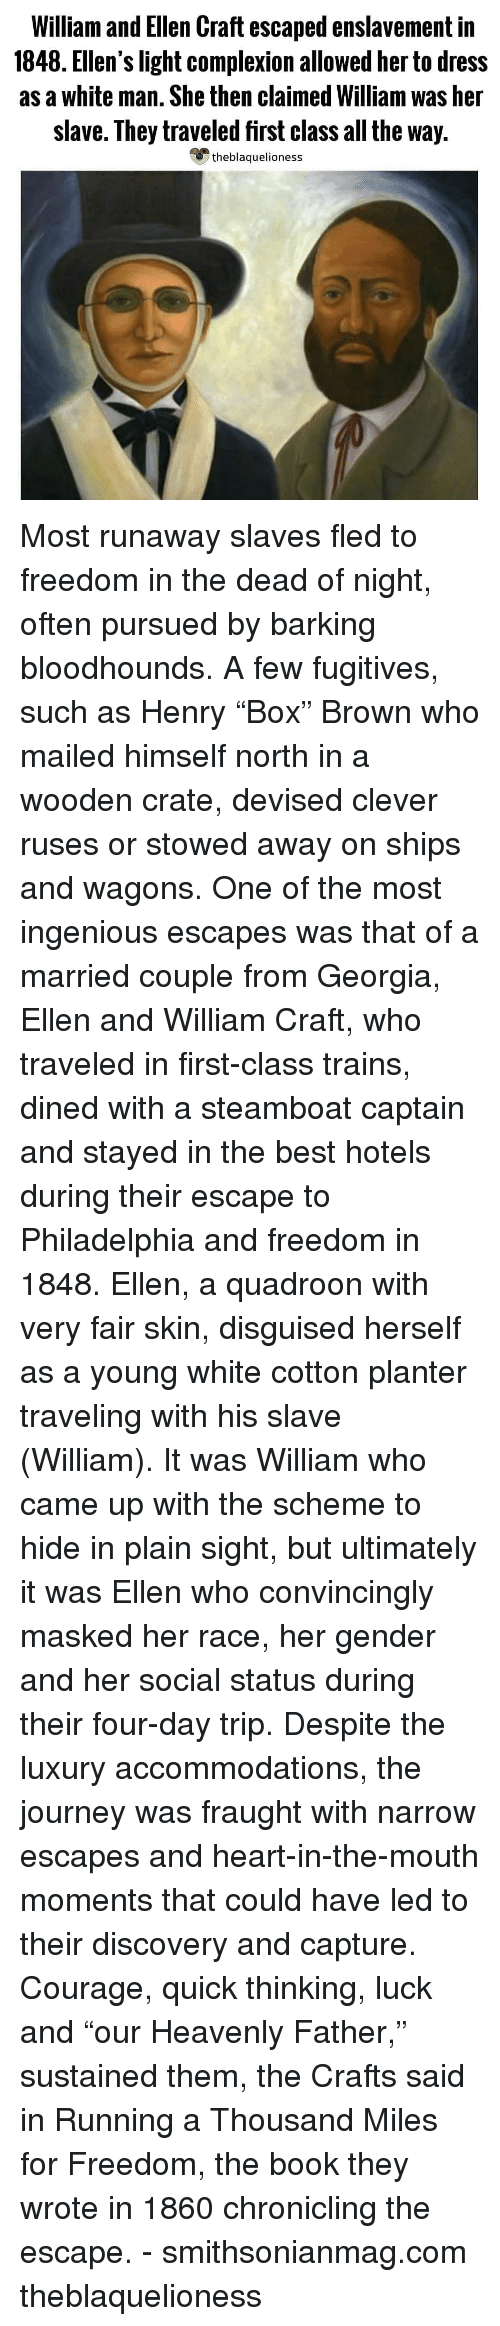 "ingenious: William and Ellen Craft escaped enslavement in  1848. Ellen's light complexion allowed her to dress  as a white man. She then claimed William was her  slave. They traveled first class all the way.  theblaquelioness Most runaway slaves fled to freedom in the dead of night, often pursued by barking bloodhounds. A few fugitives, such as Henry ""Box"" Brown who mailed himself north in a wooden crate, devised clever ruses or stowed away on ships and wagons. One of the most ingenious escapes was that of a married couple from Georgia, Ellen and William Craft, who traveled in first-class trains, dined with a steamboat captain and stayed in the best hotels during their escape to Philadelphia and freedom in 1848. Ellen, a quadroon with very fair skin, disguised herself as a young white cotton planter traveling with his slave (William). It was William who came up with the scheme to hide in plain sight, but ultimately it was Ellen who convincingly masked her race, her gender and her social status during their four-day trip. Despite the luxury accommodations, the journey was fraught with narrow escapes and heart-in-the-mouth moments that could have led to their discovery and capture. Courage, quick thinking, luck and ""our Heavenly Father,"" sustained them, the Crafts said in Running a Thousand Miles for Freedom, the book they wrote in 1860 chronicling the escape. - smithsonianmag.com theblaquelioness"